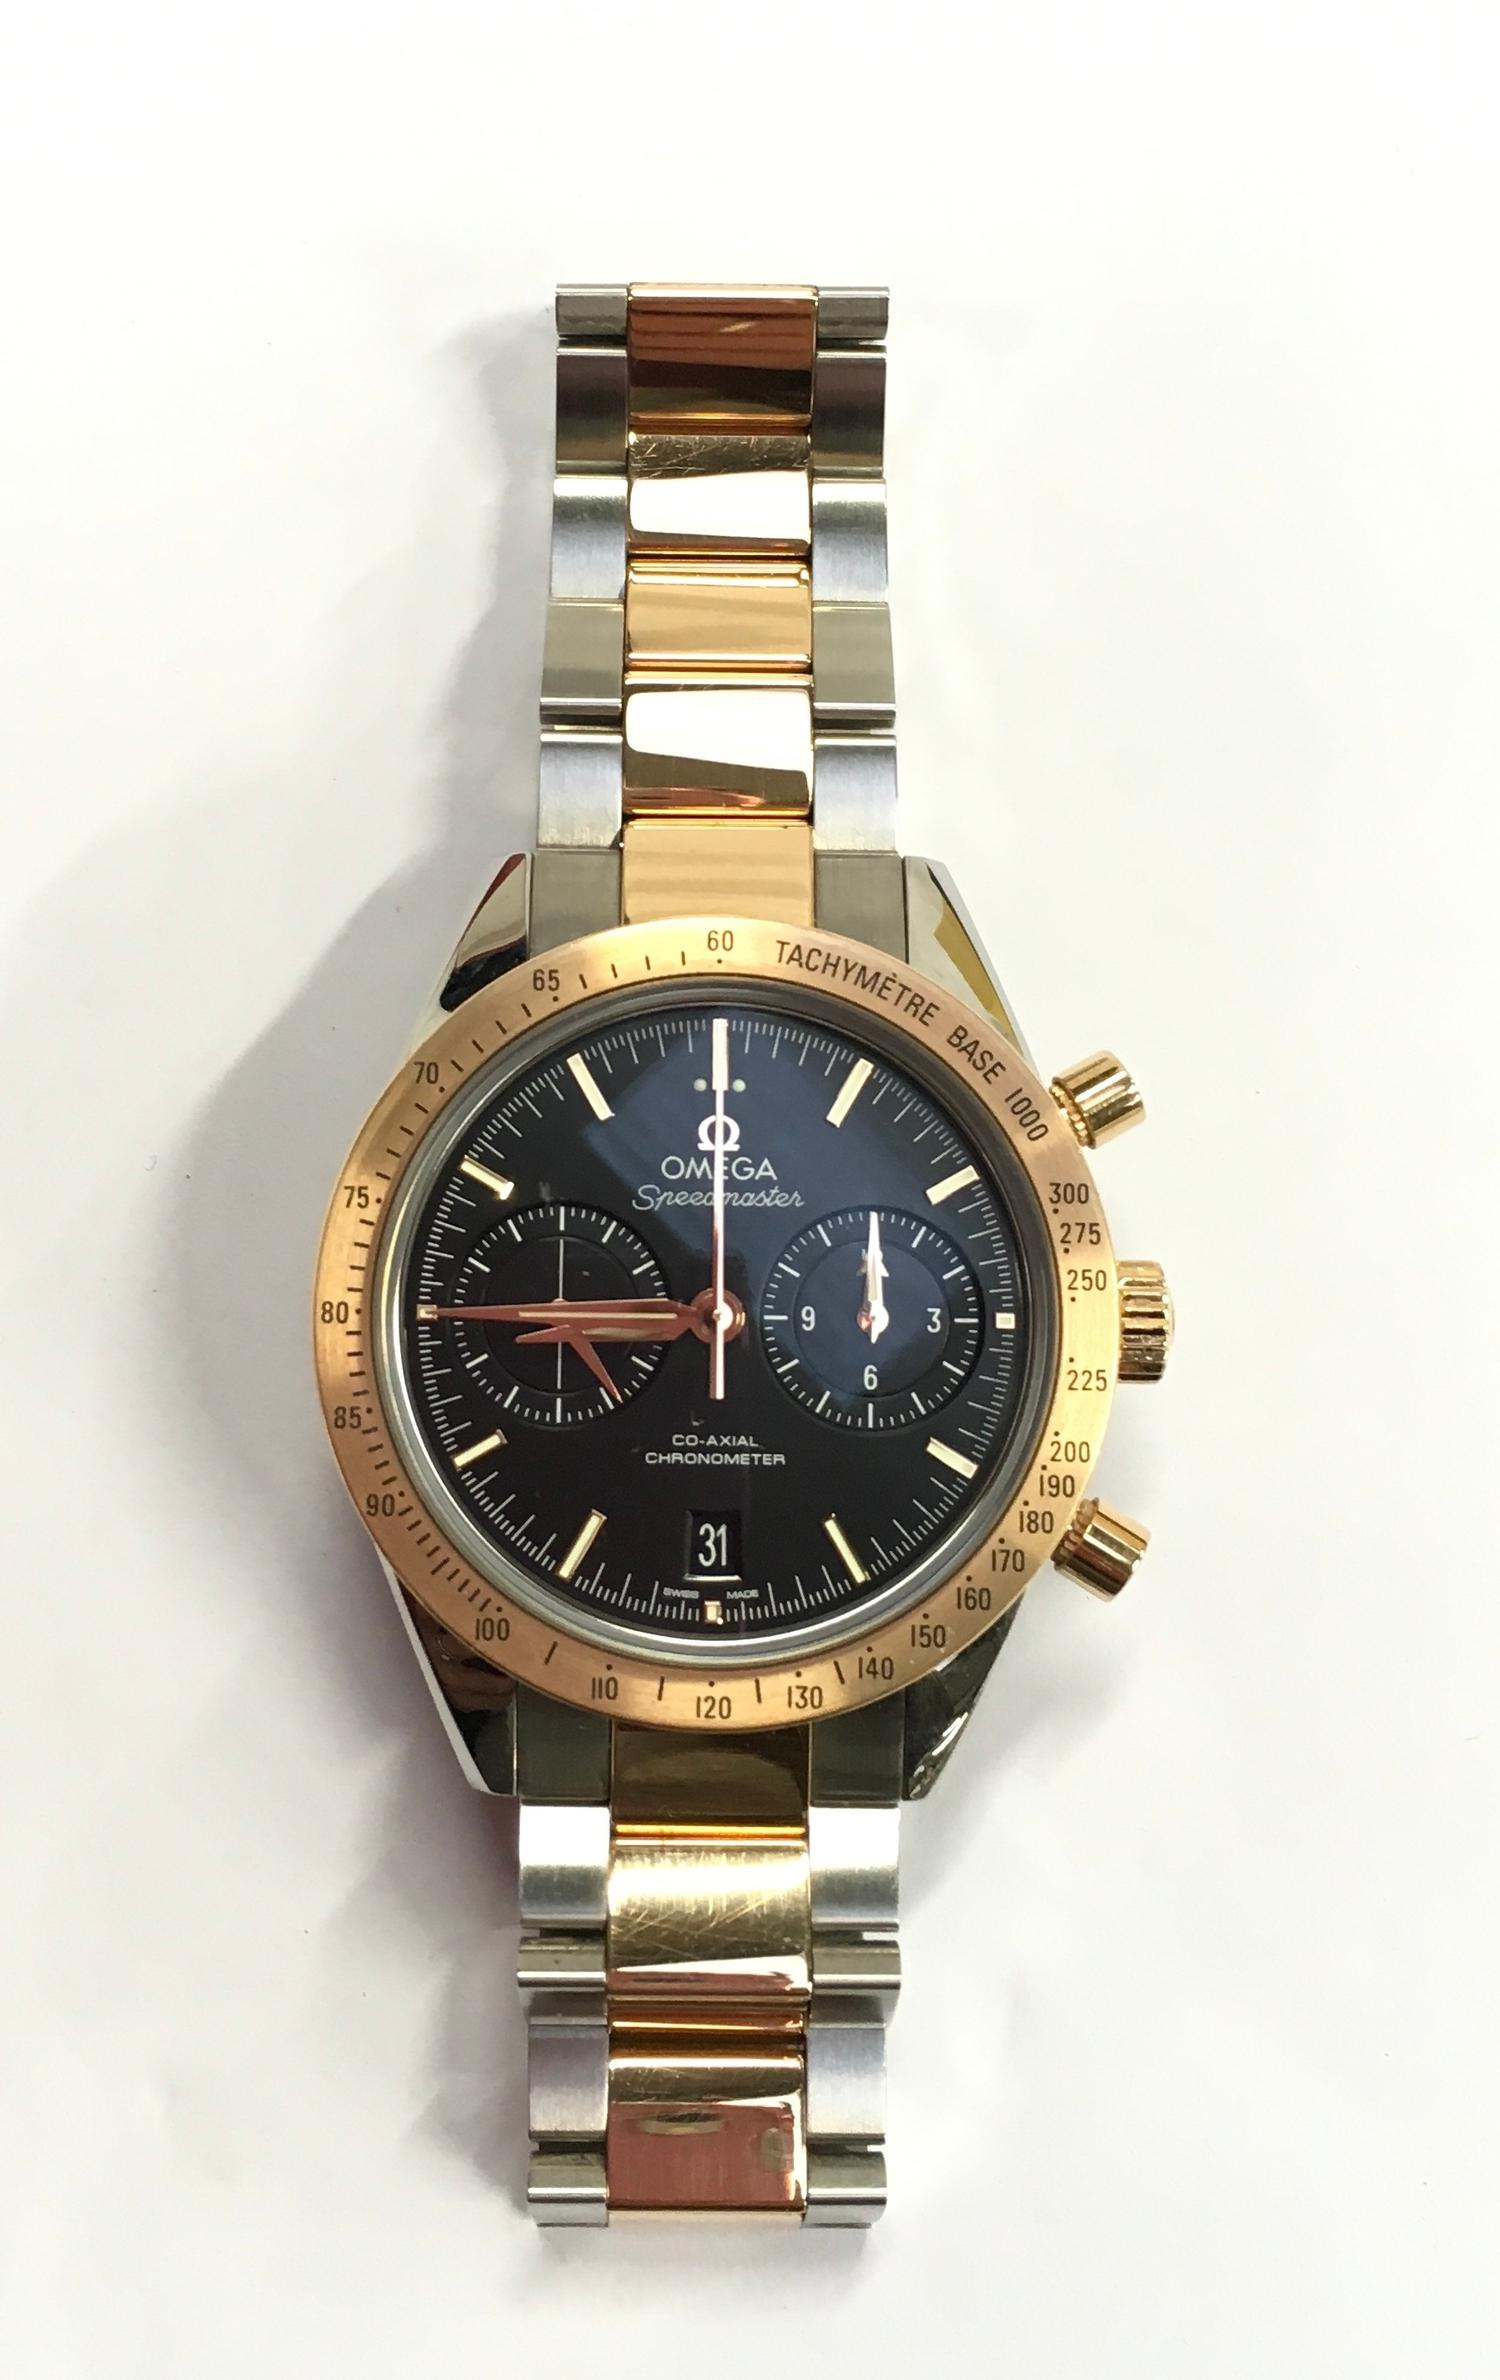 Omega Rose Gold and Stainless Steel Speedmaster Wristwatch, co-axial movement. - Image 3 of 11